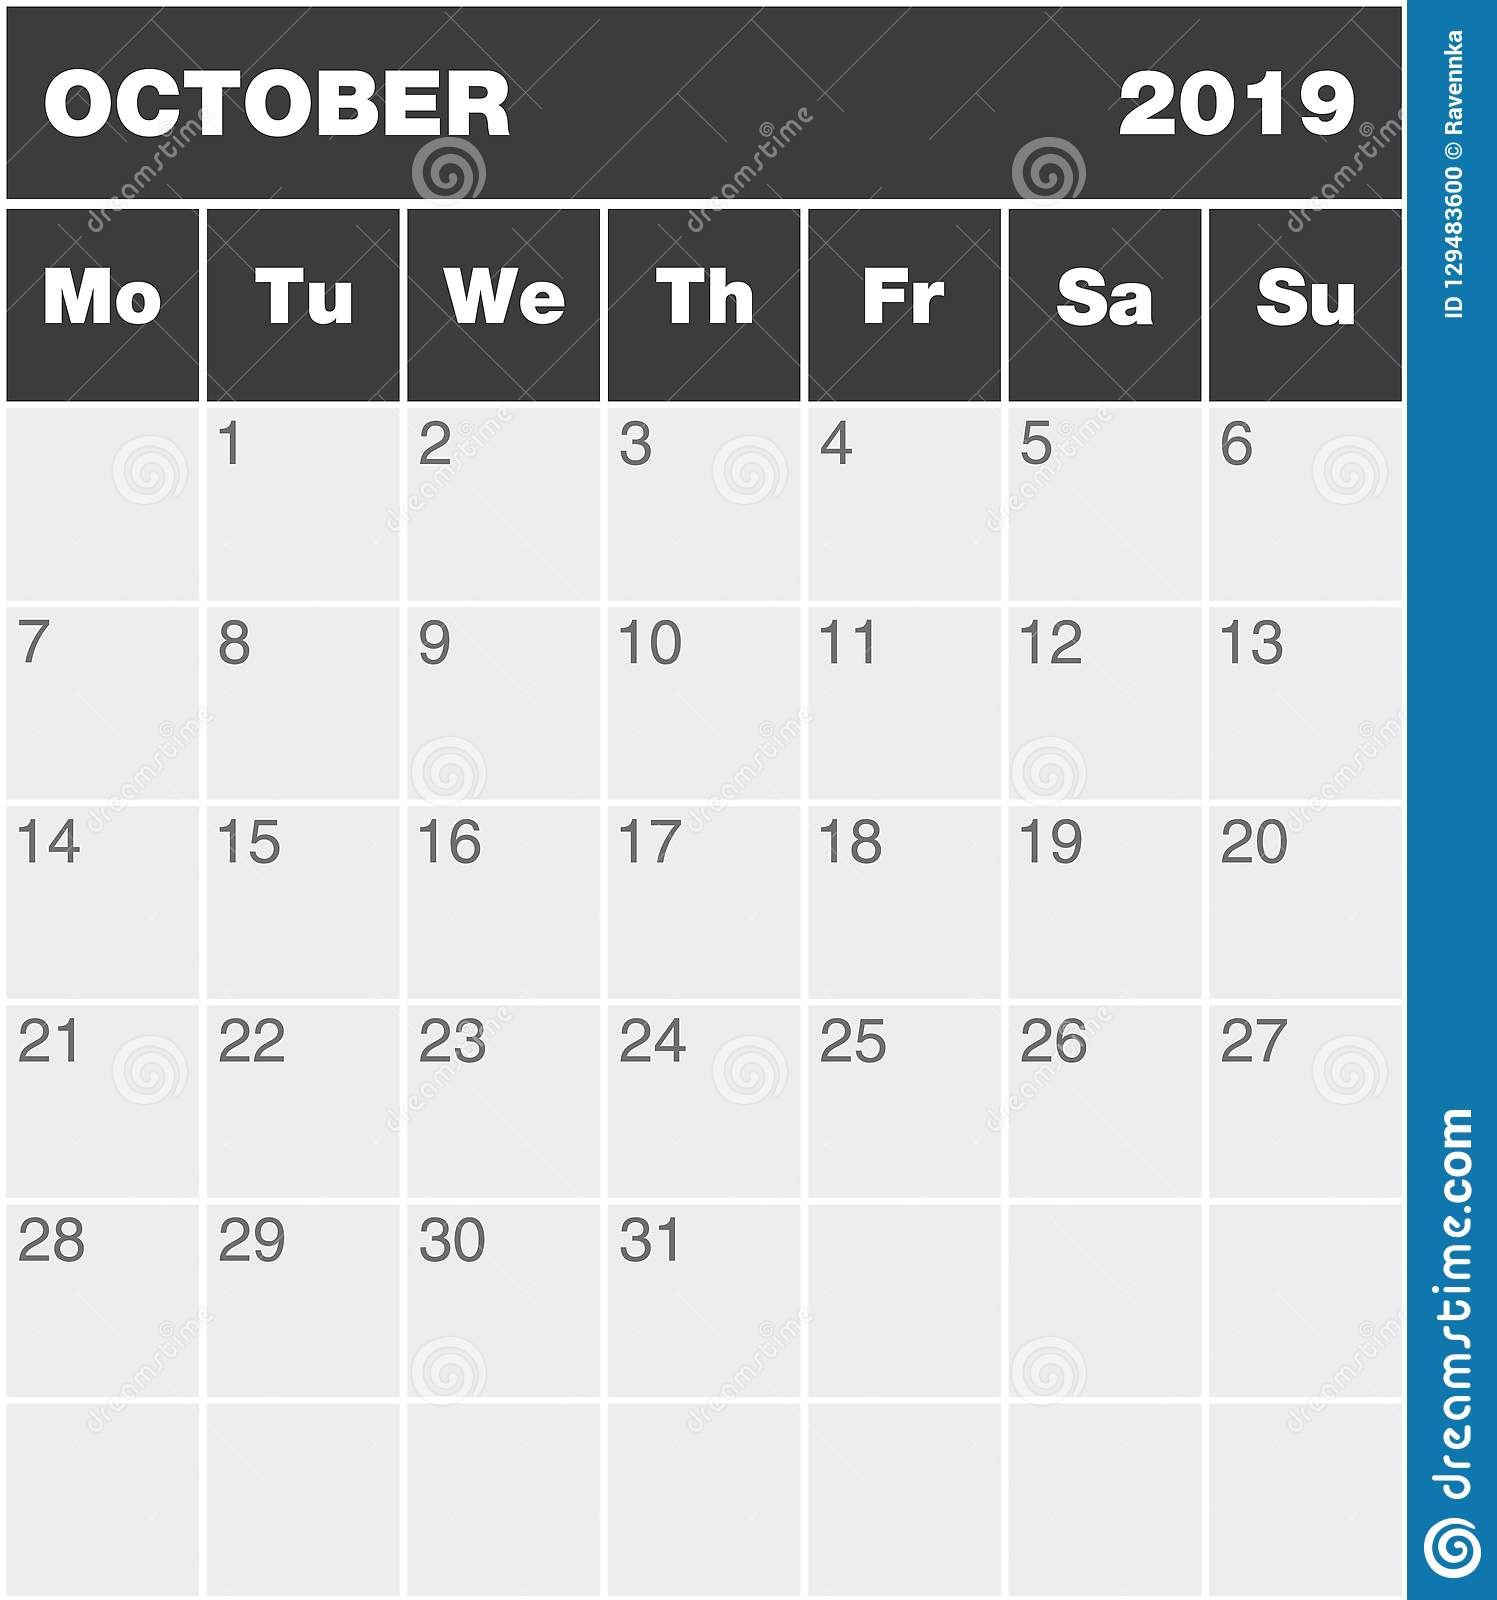 graphic relating to Monthly Planning Calendar named Clic Blank Thirty day period Greyscale Developing Calendar - Oct